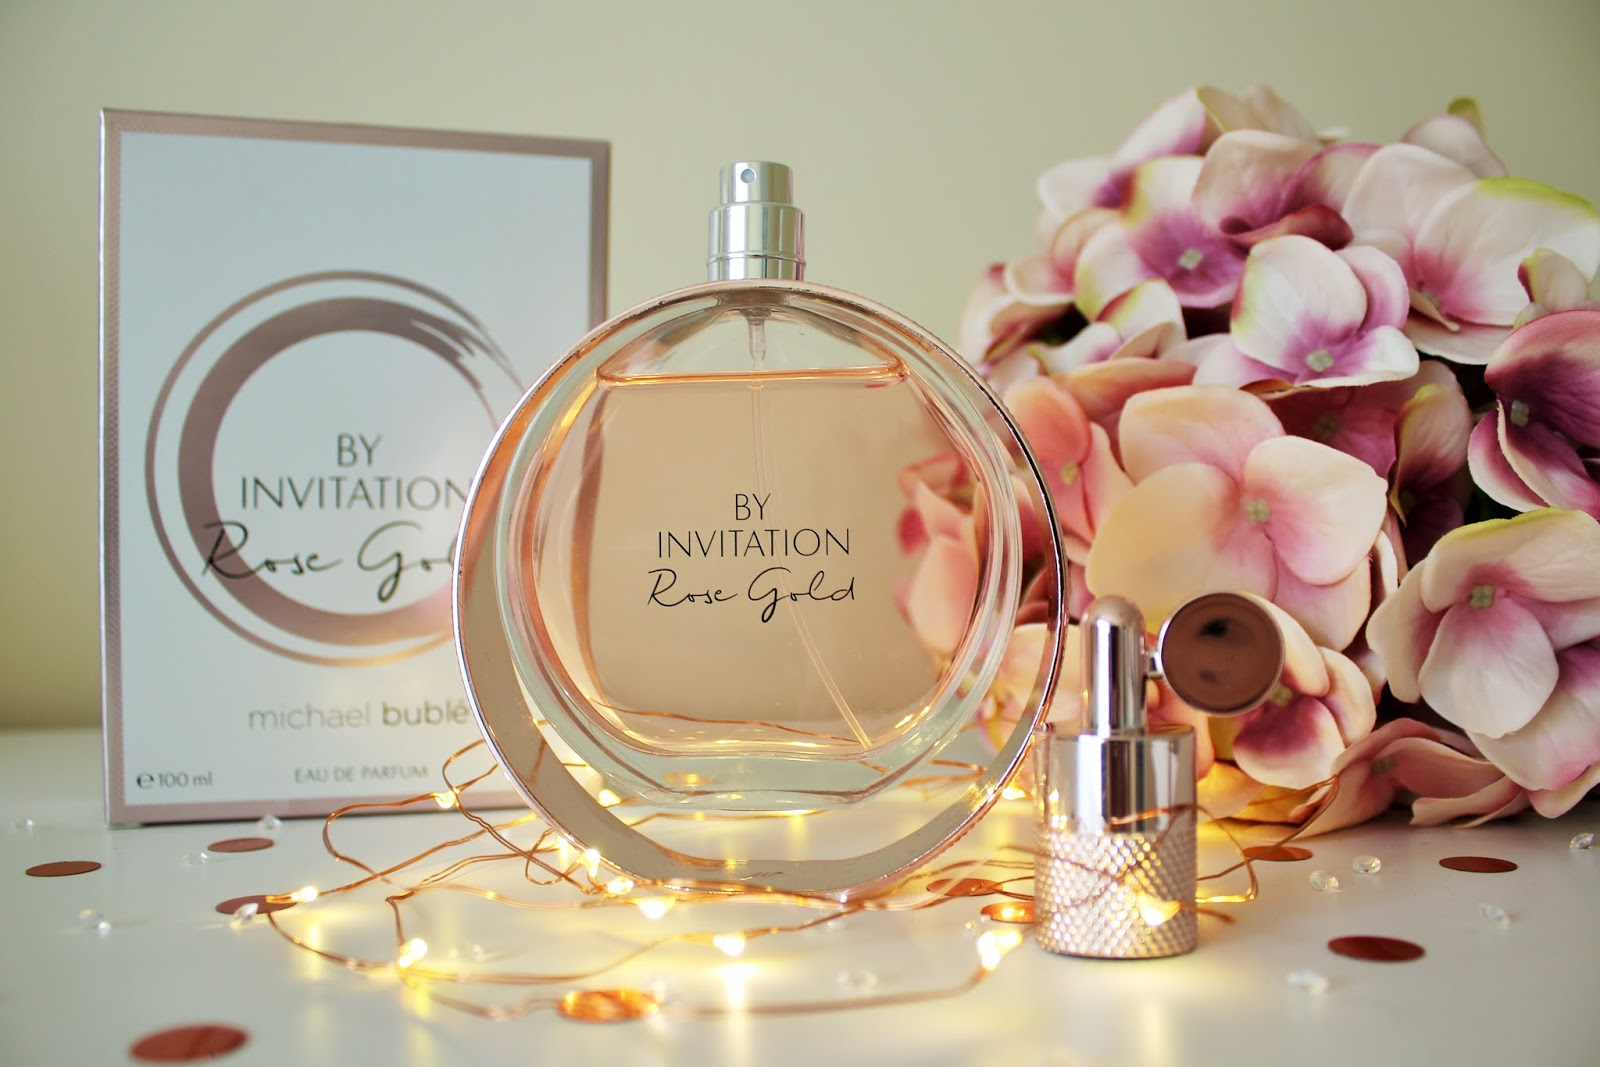 Michael Buble By Invitation Rose Gold Perfume Review - 4